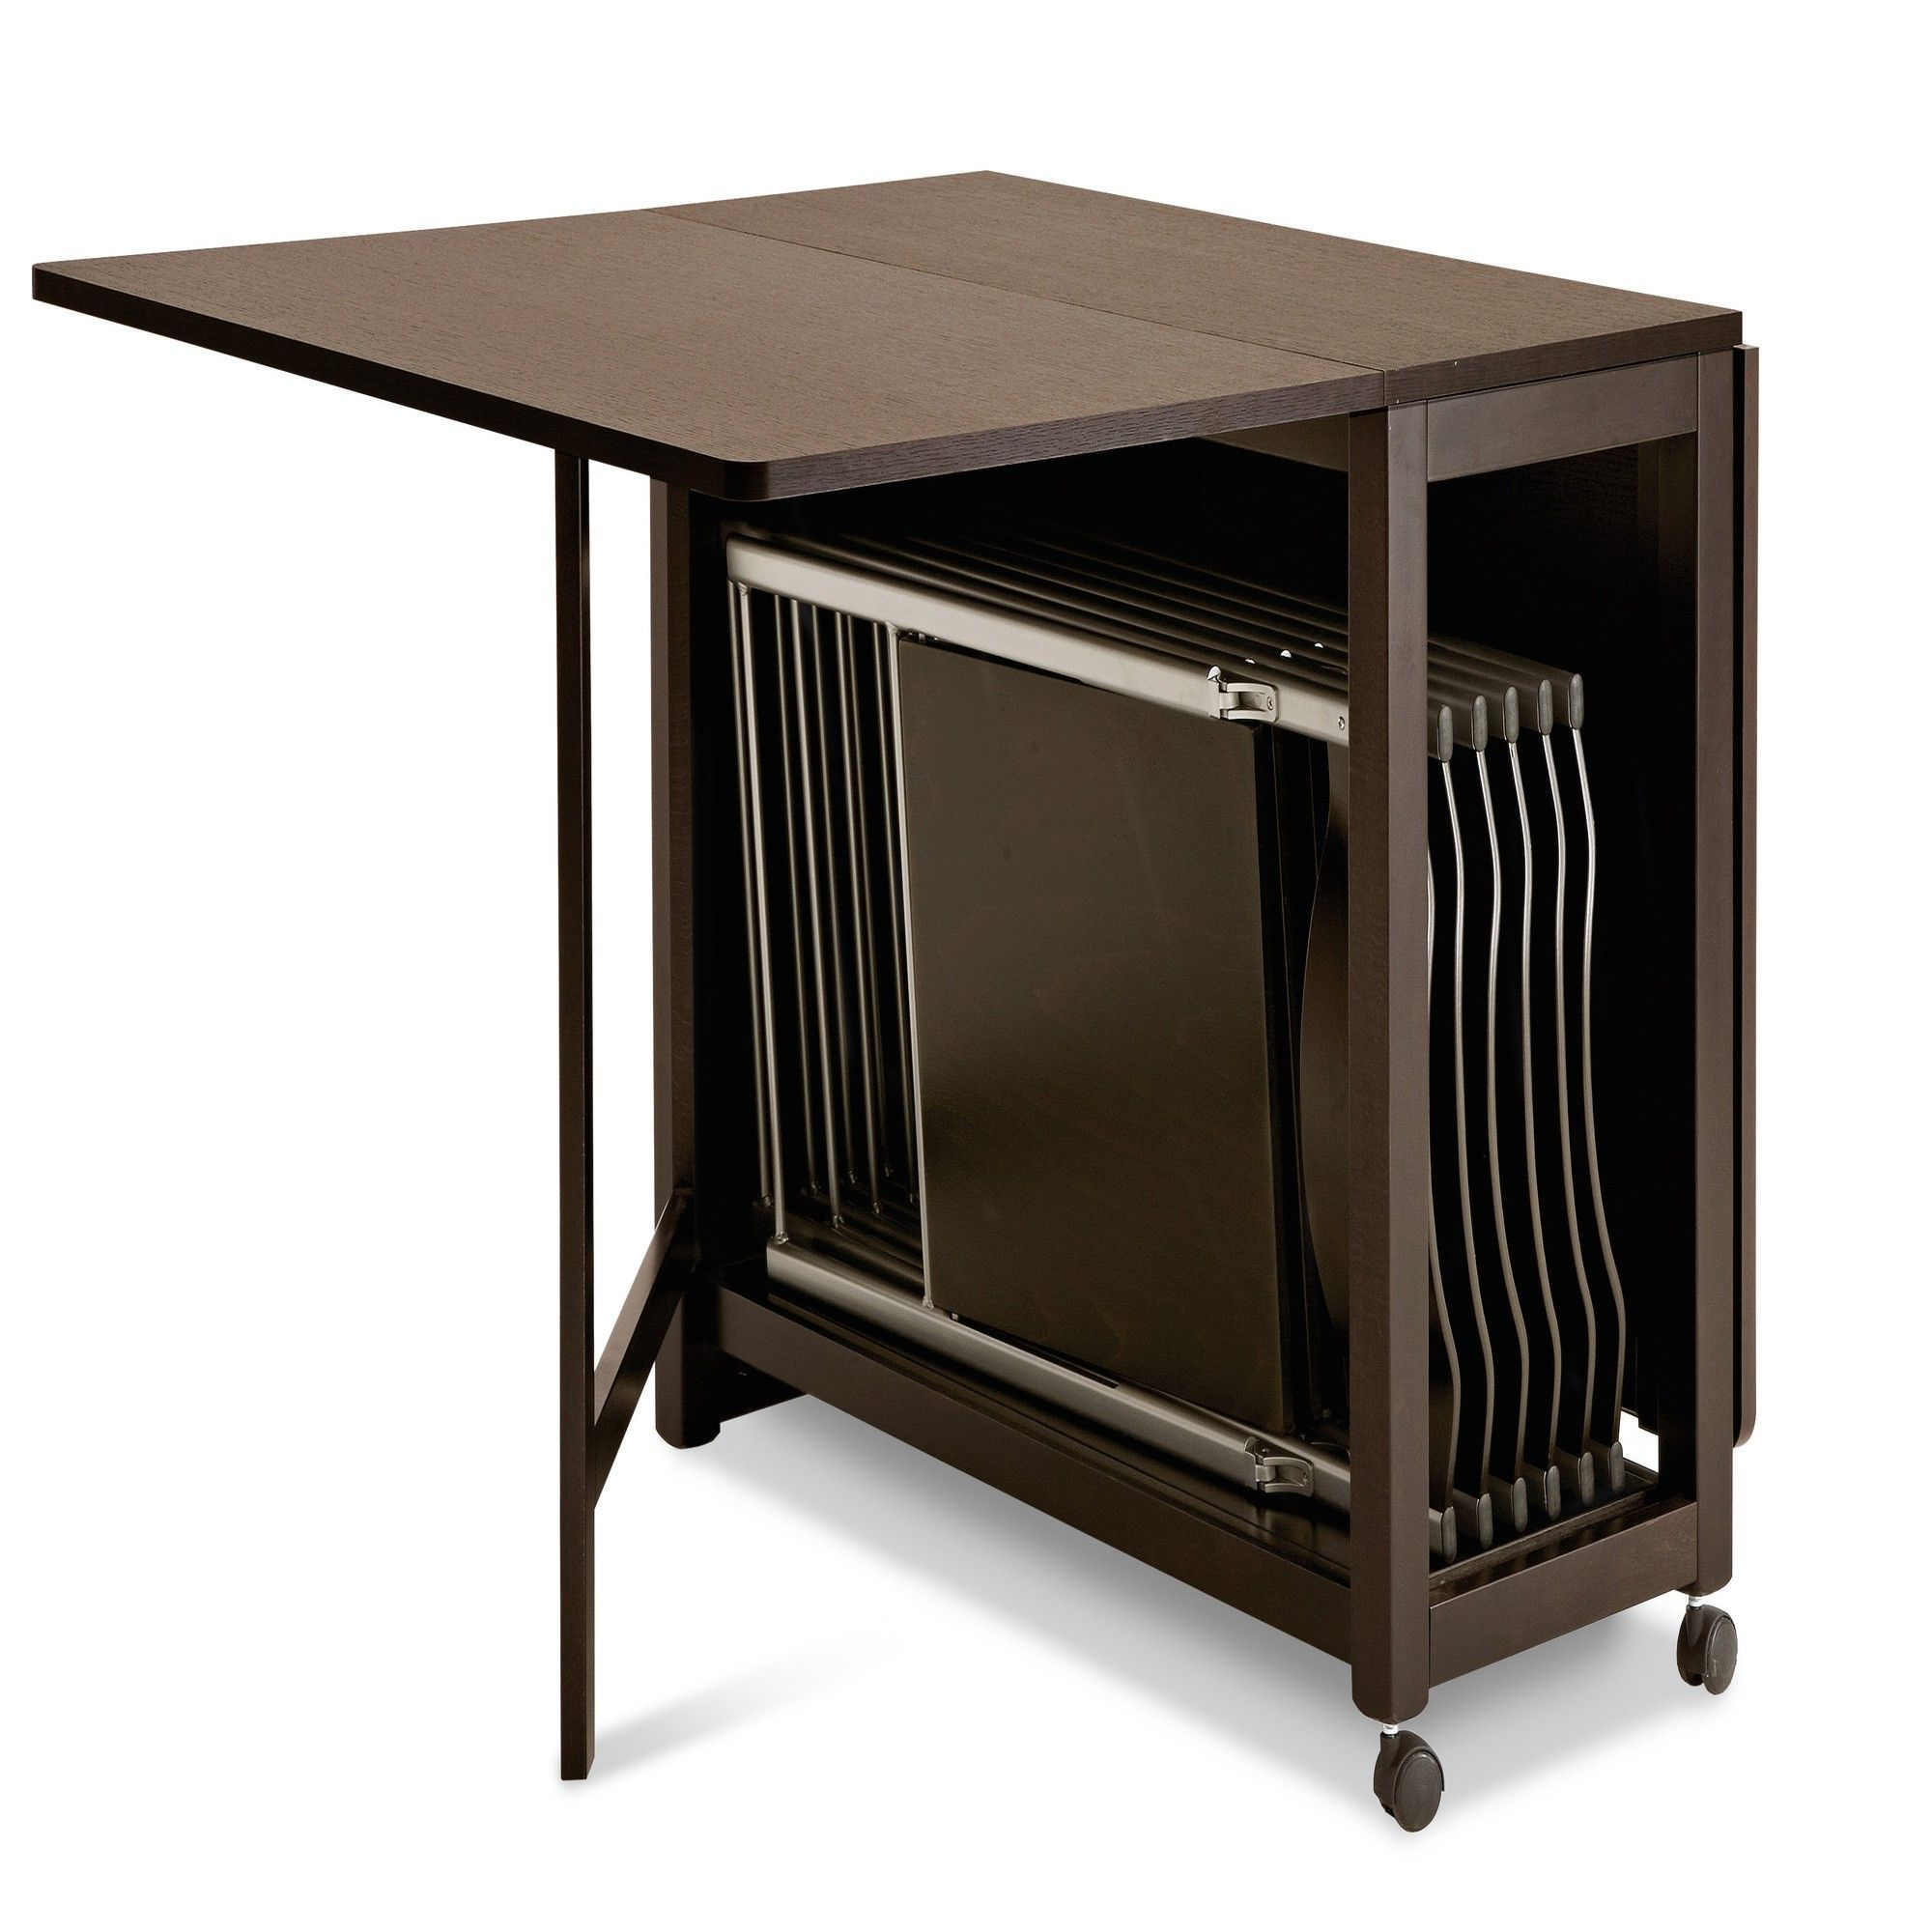 Unique Fold Away Dining Table Inspirational Fold Away